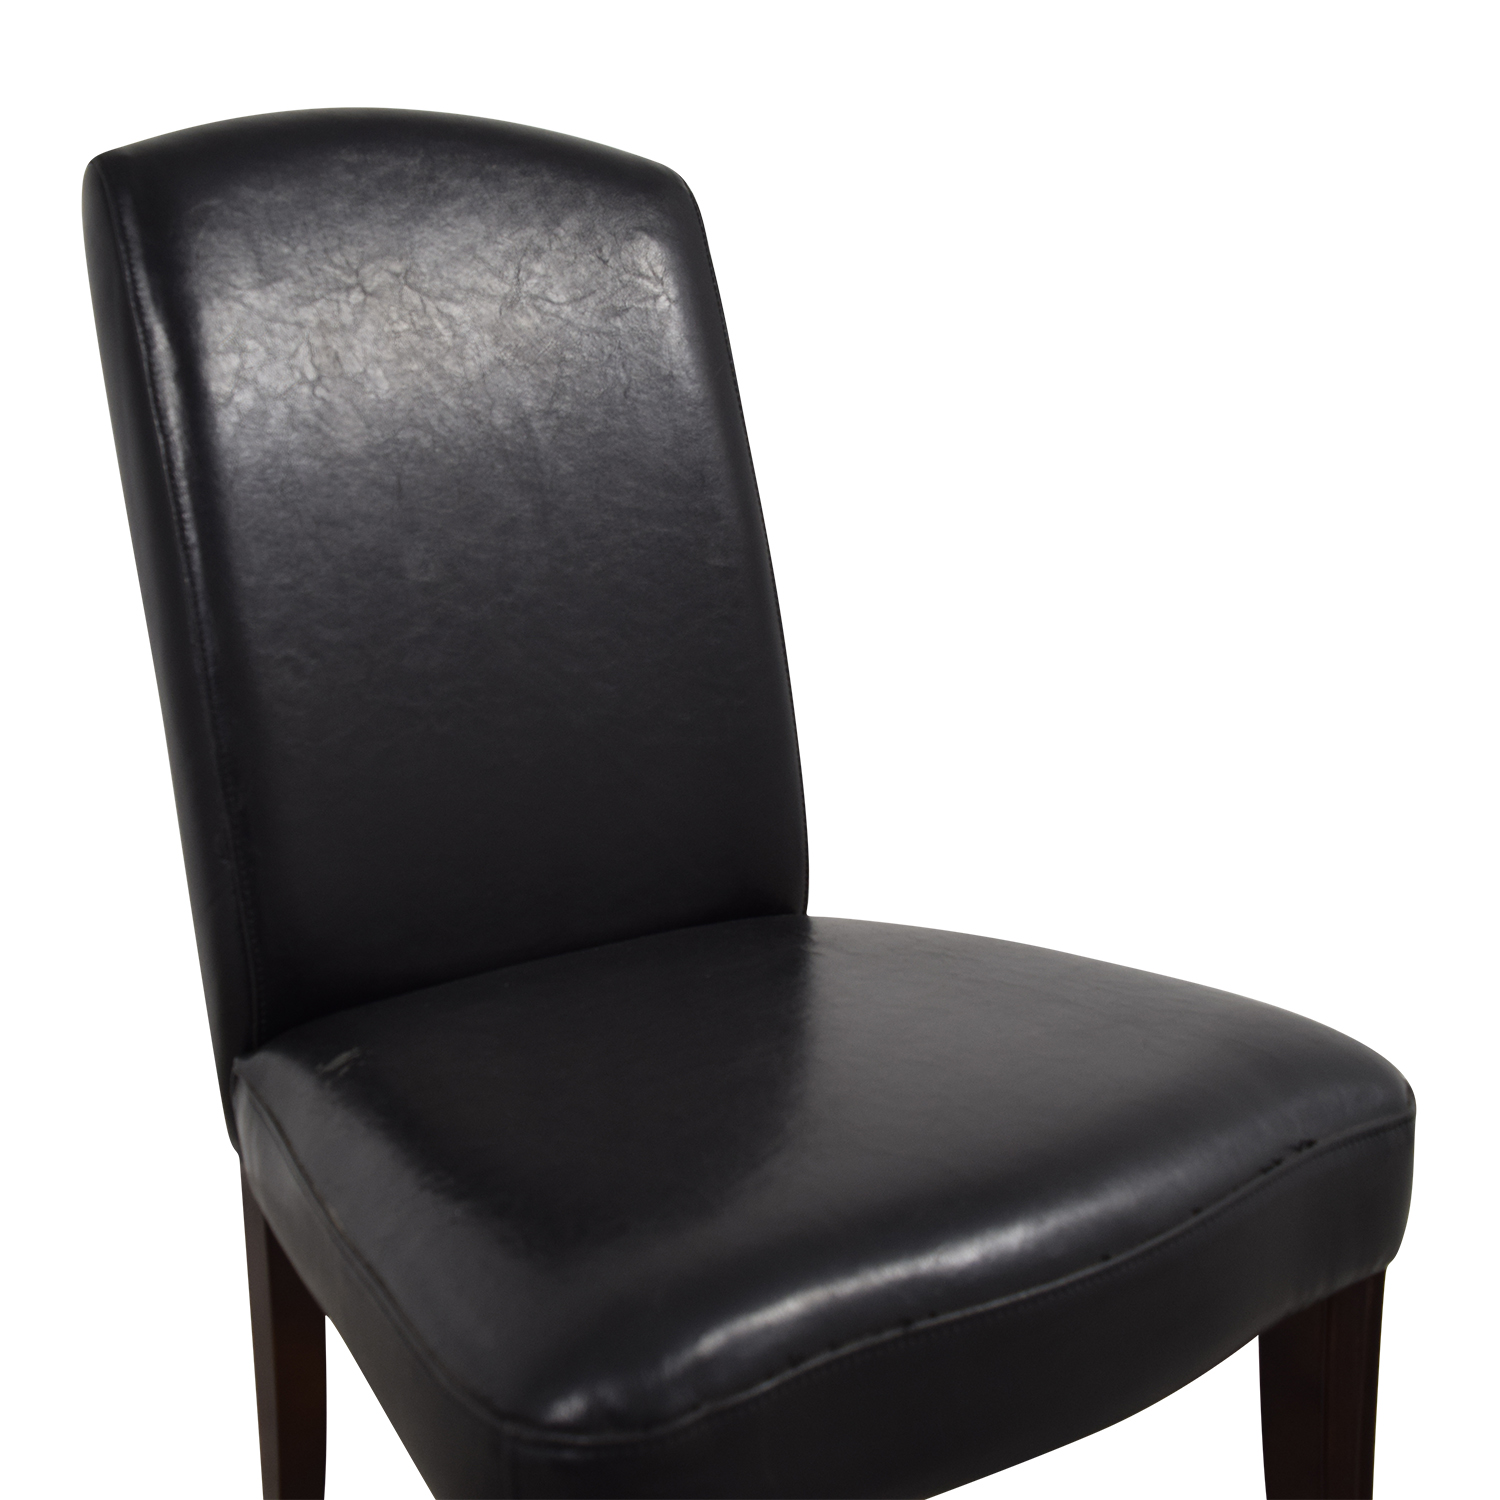 Black Leatherette Chair with Padded Seat nyc